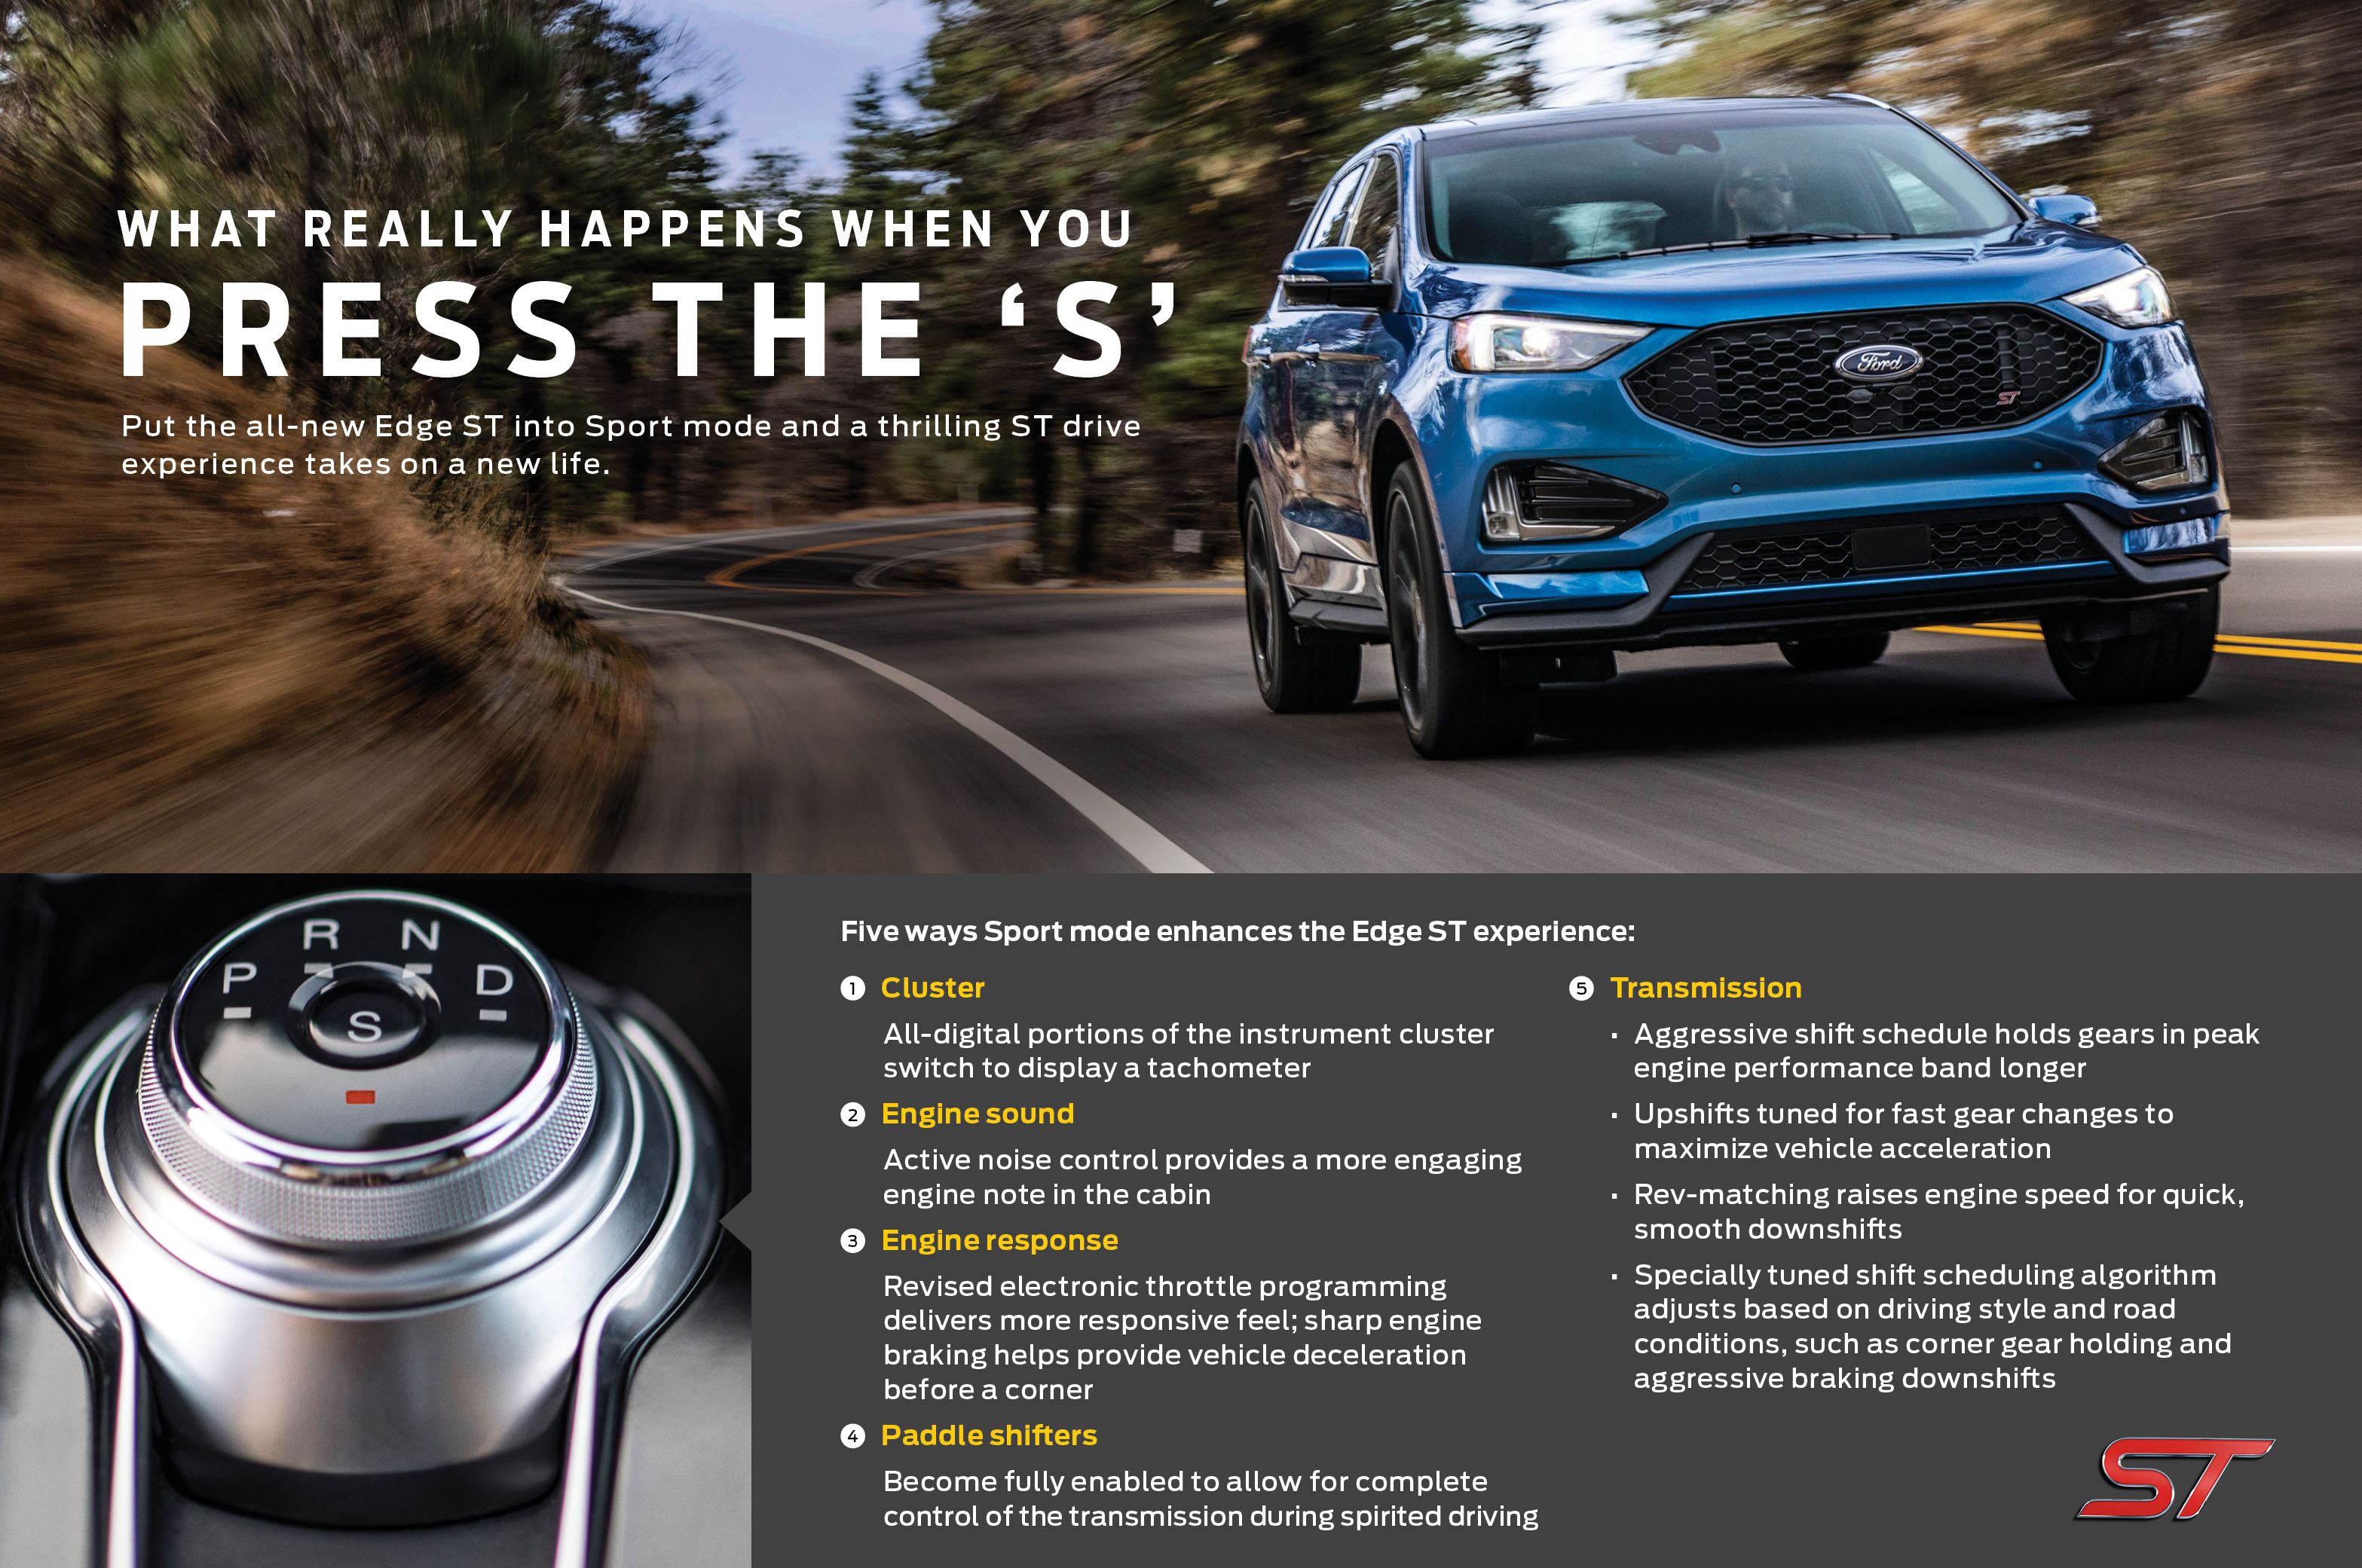 2019-Ford-Edge-ST-Sport-Mode.jpg